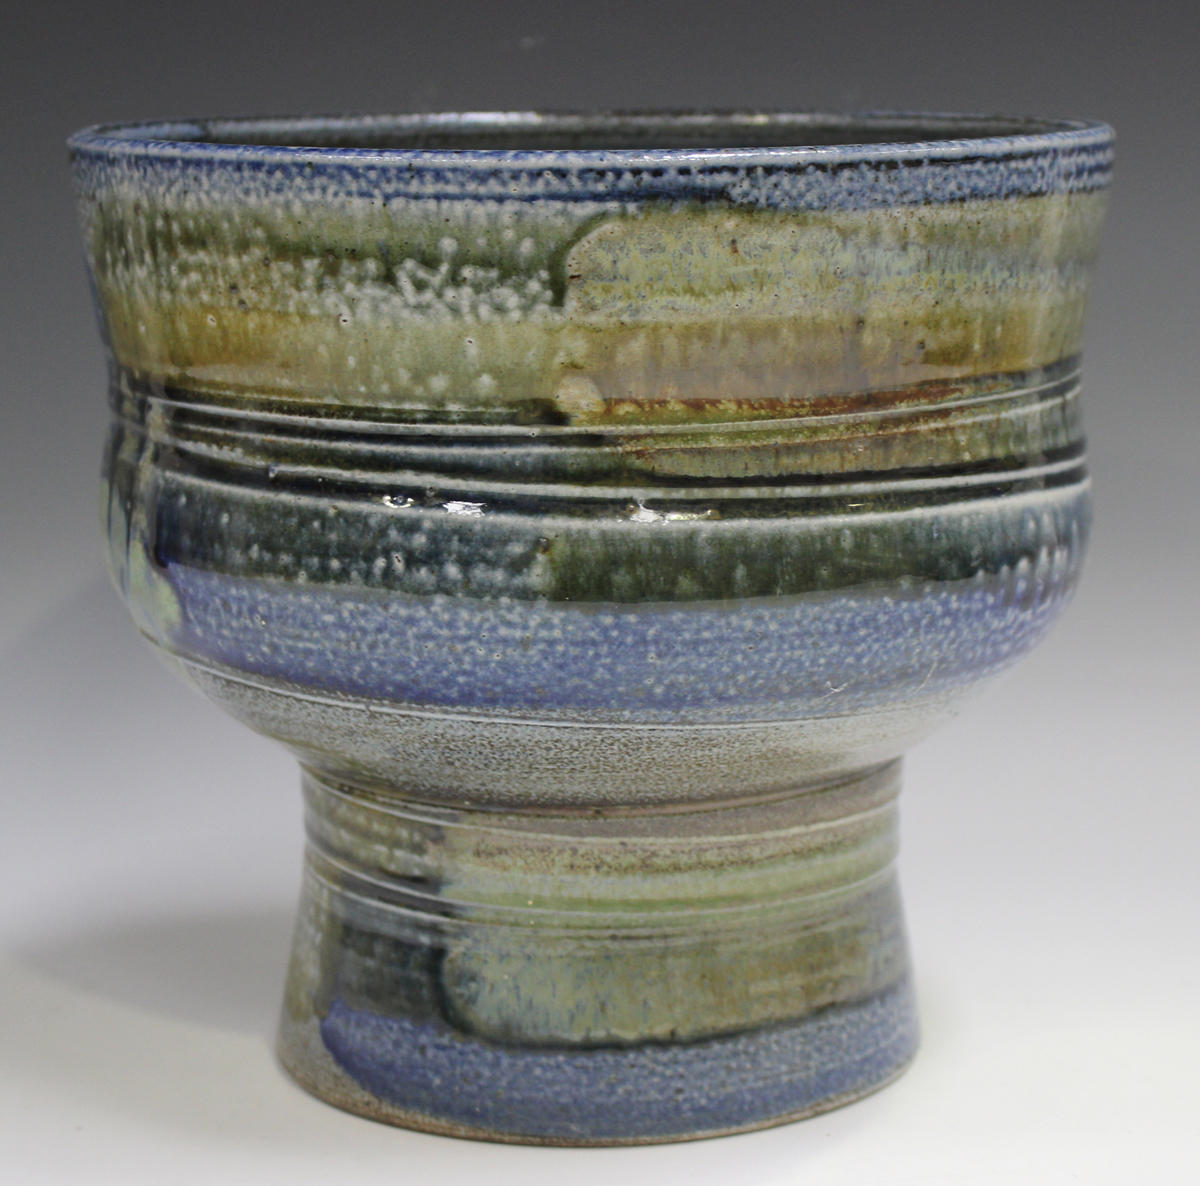 A large Jane Hamlyn studio pottery salt glazed footed bowl, decorated in shades of blue, green and - Image 7 of 7